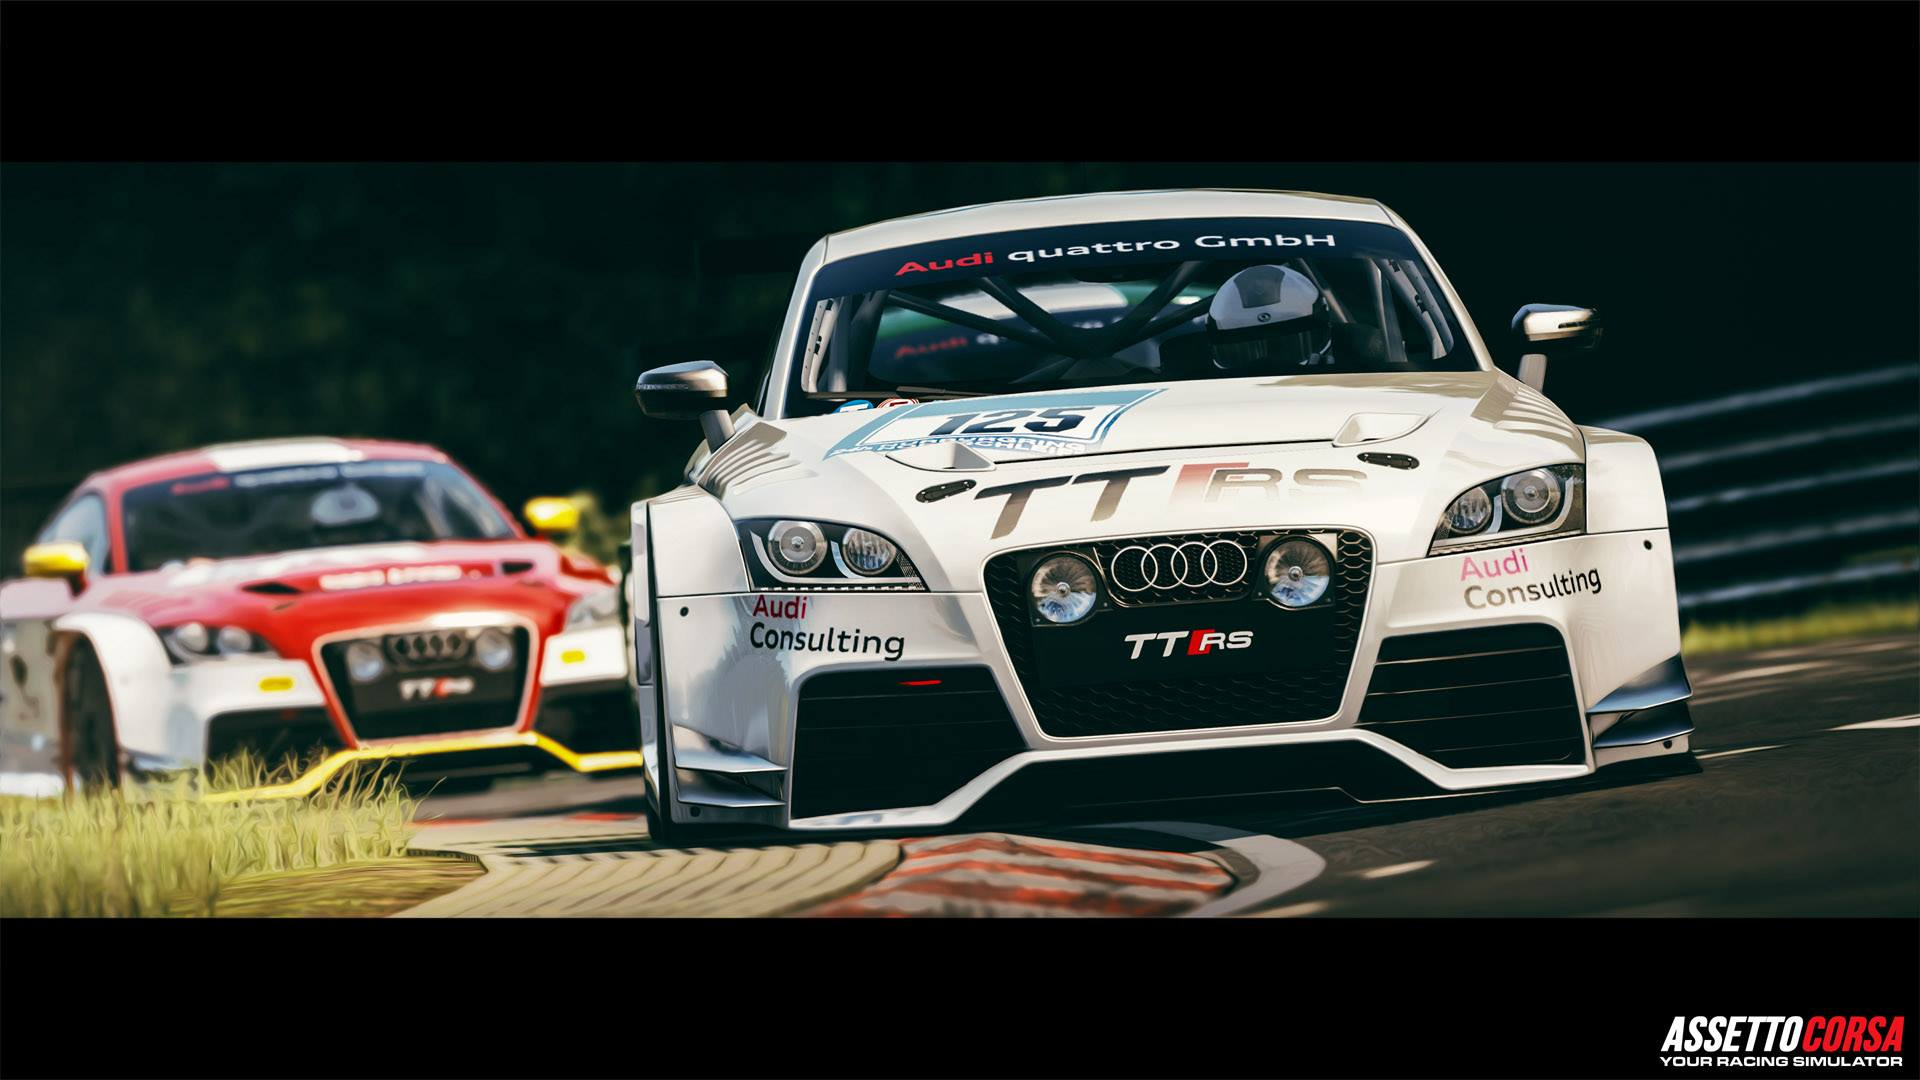 Assetto Corsa Ready To Race DLC Audi TT RS (VLN)